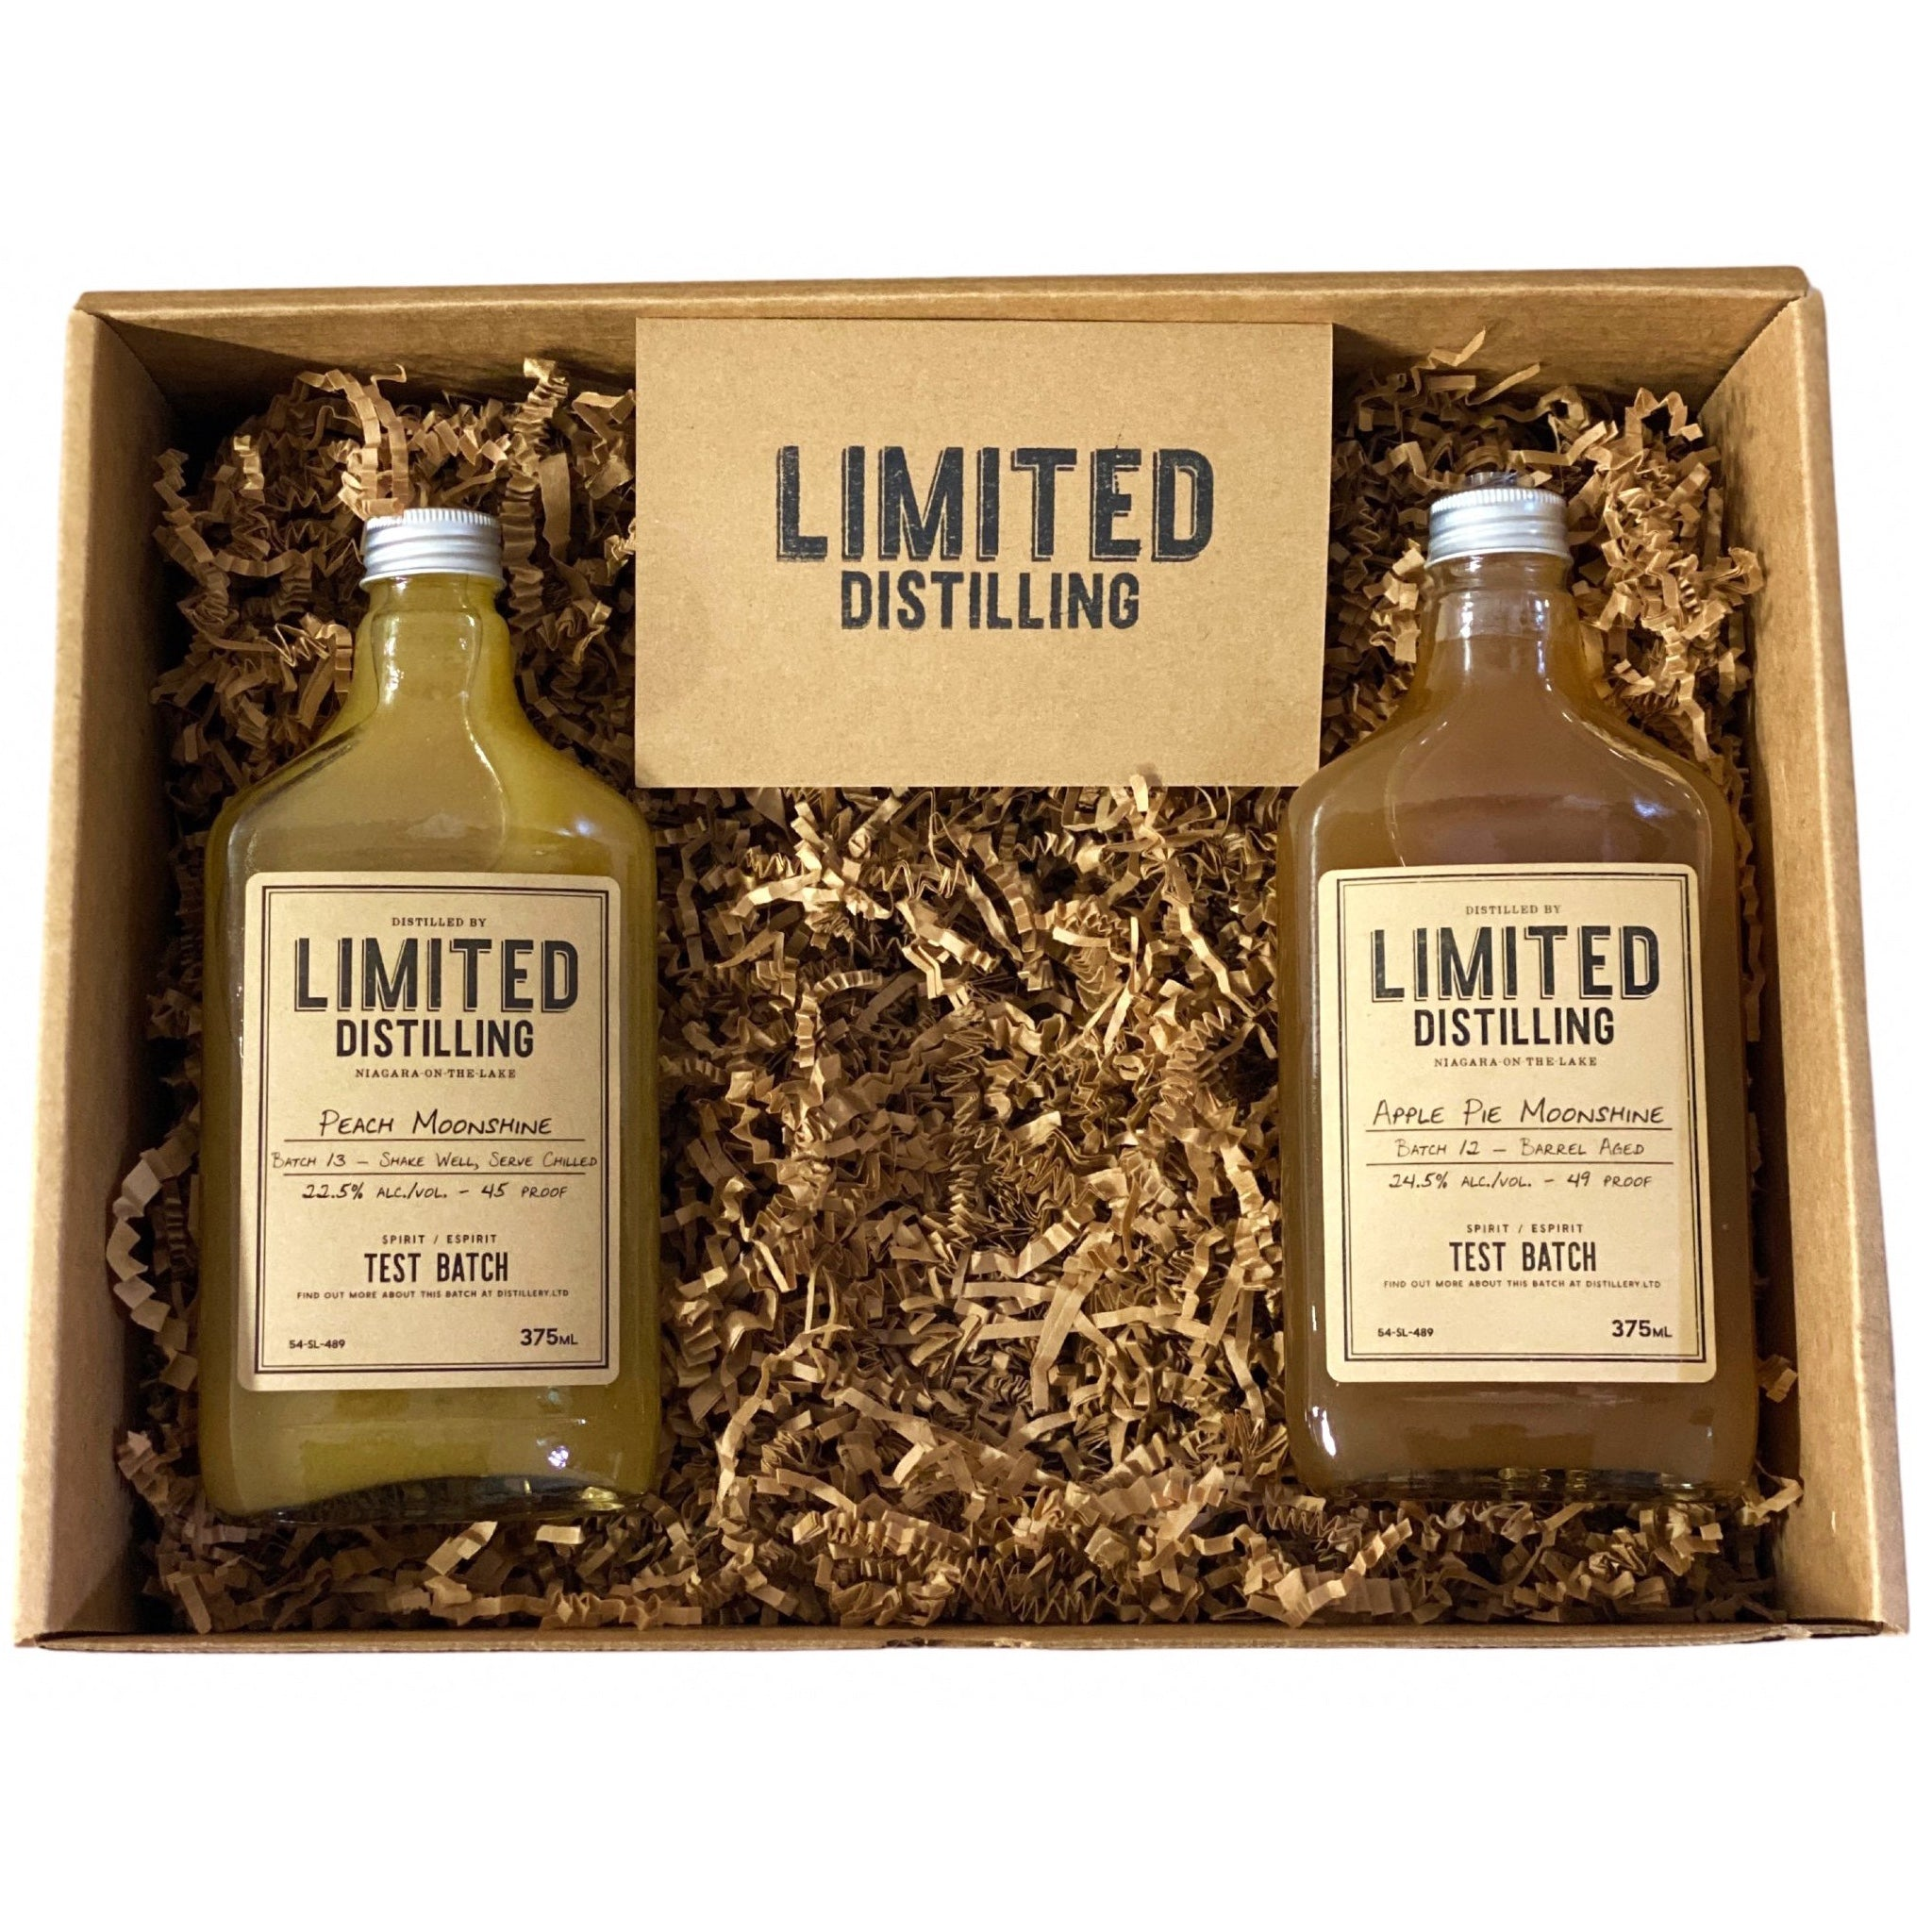 The Moonshine Cocktail Kit